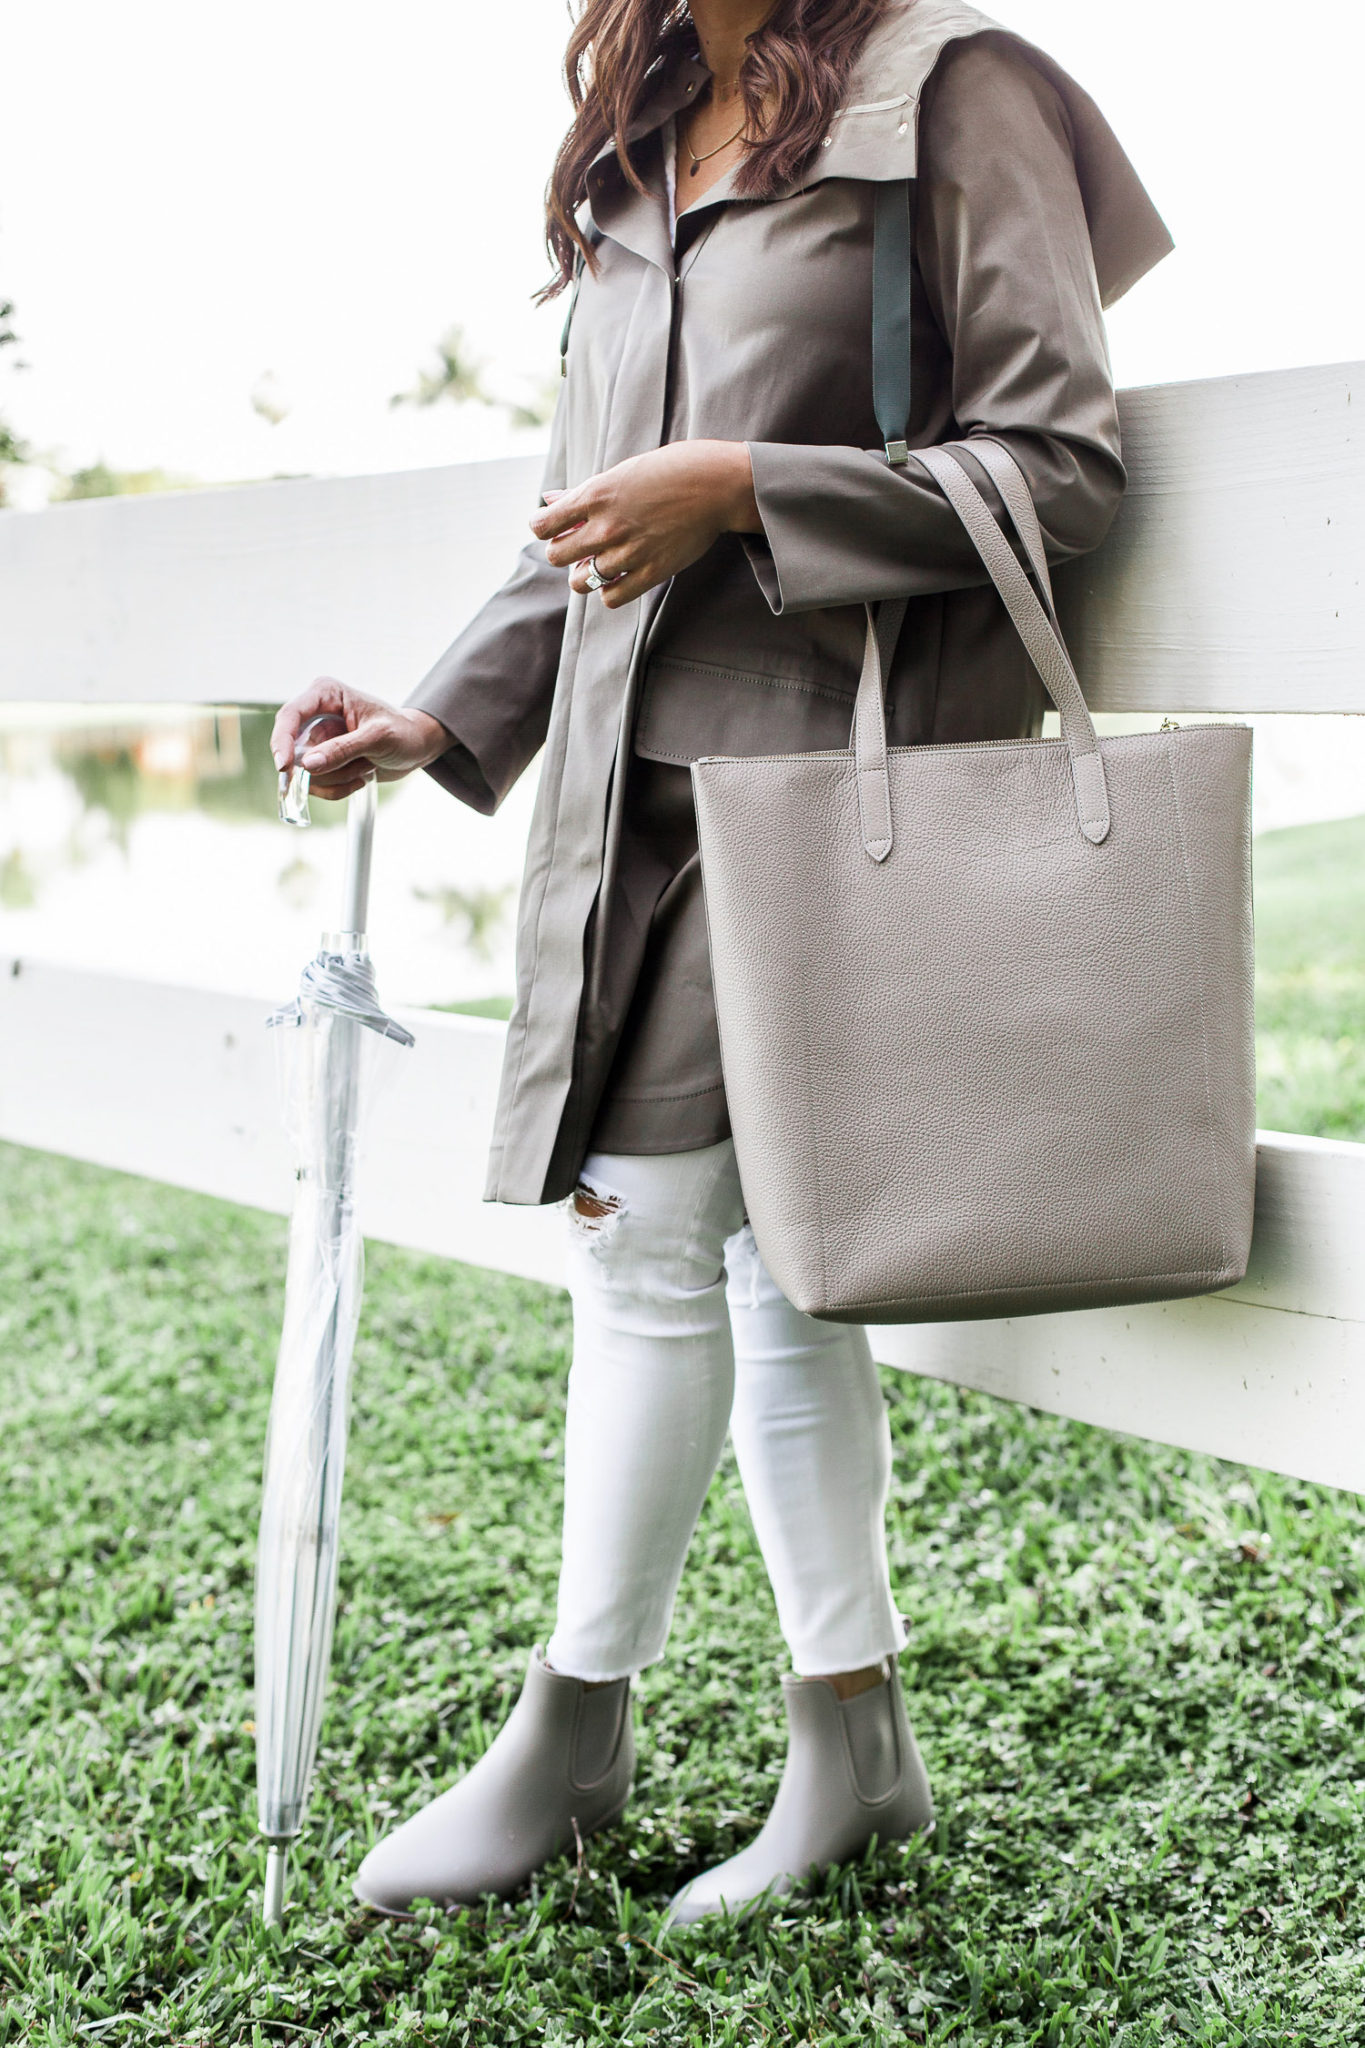 591576d3f90 Chic Rainy Day Outfit - A Glam Lifestyle